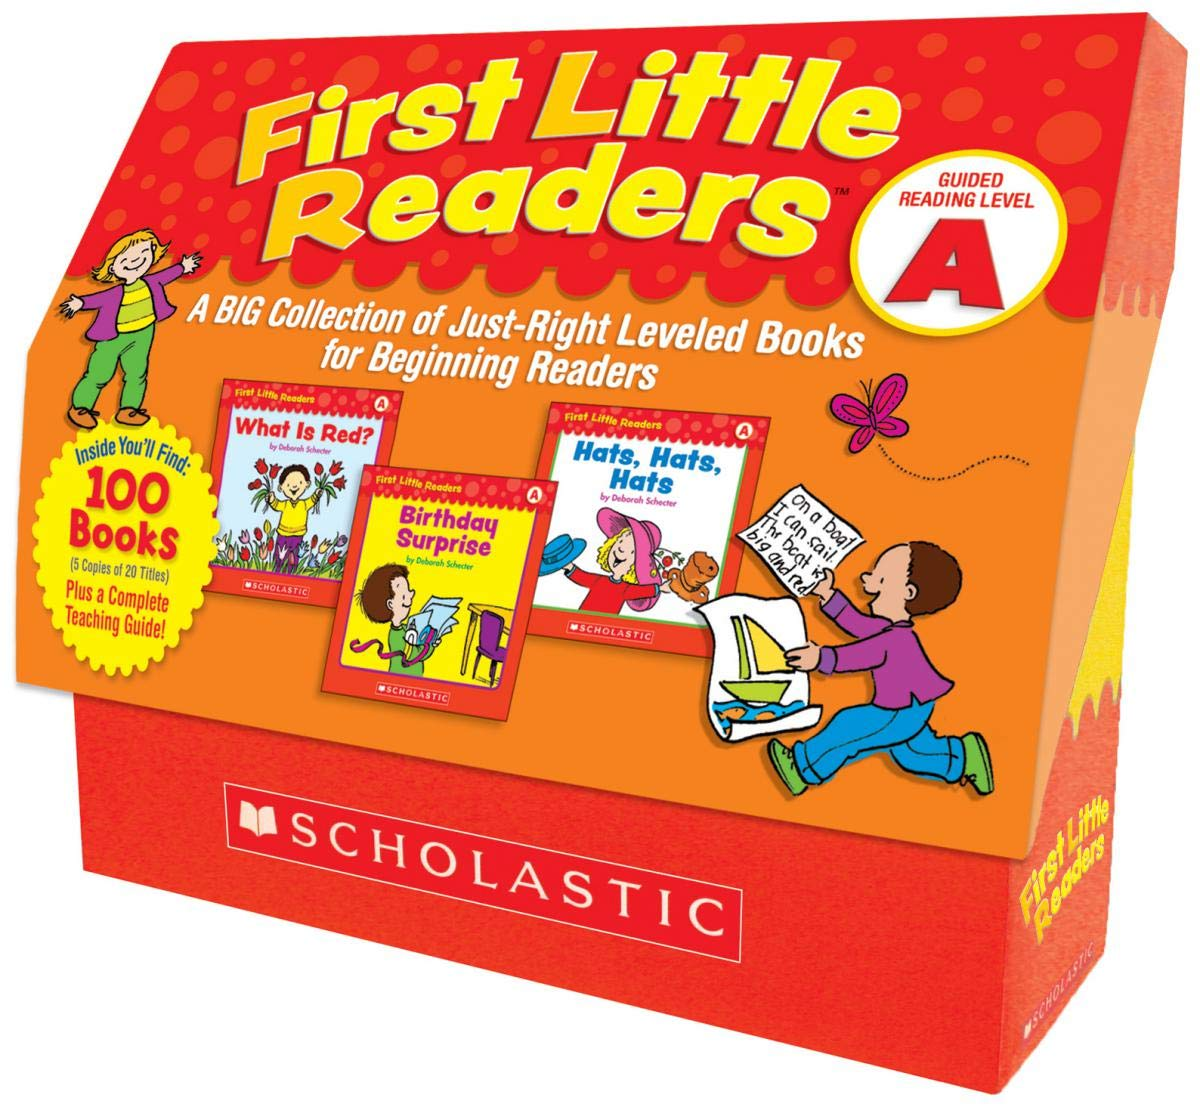 First Little Readers: Guided Reading Level A: A Big Collection of Just-Right Leveled Books for Beginning Readers by Scholastic Teaching Resources (Teaching Strategies)